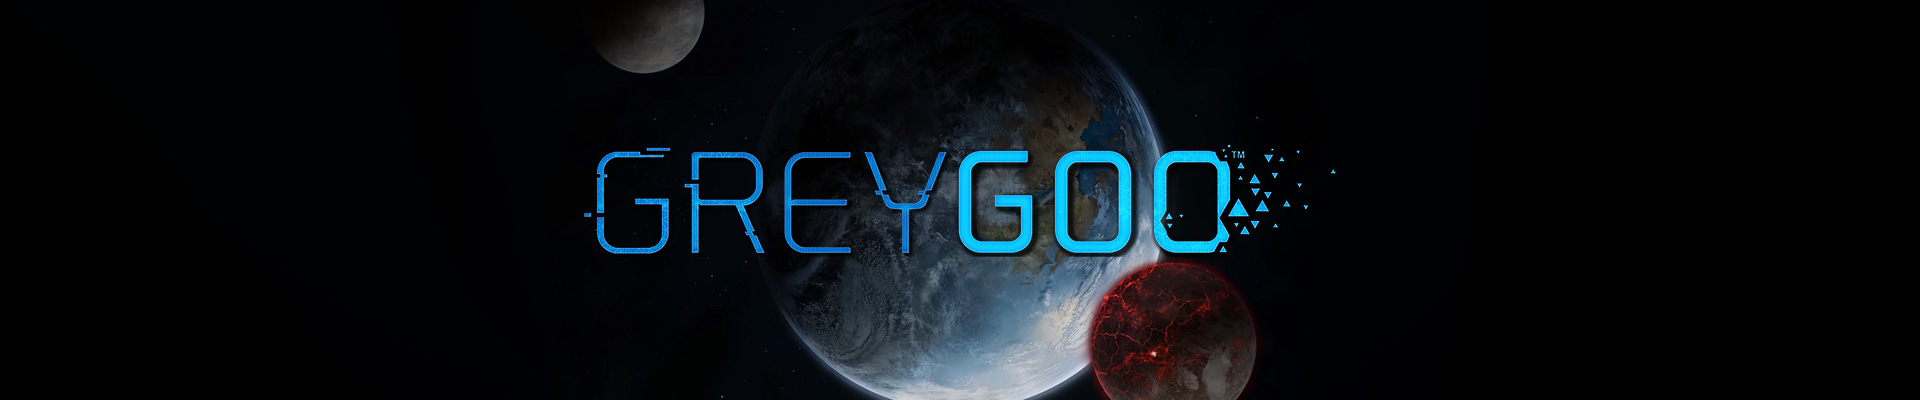 Thoughts on: Grey Goo, as a story